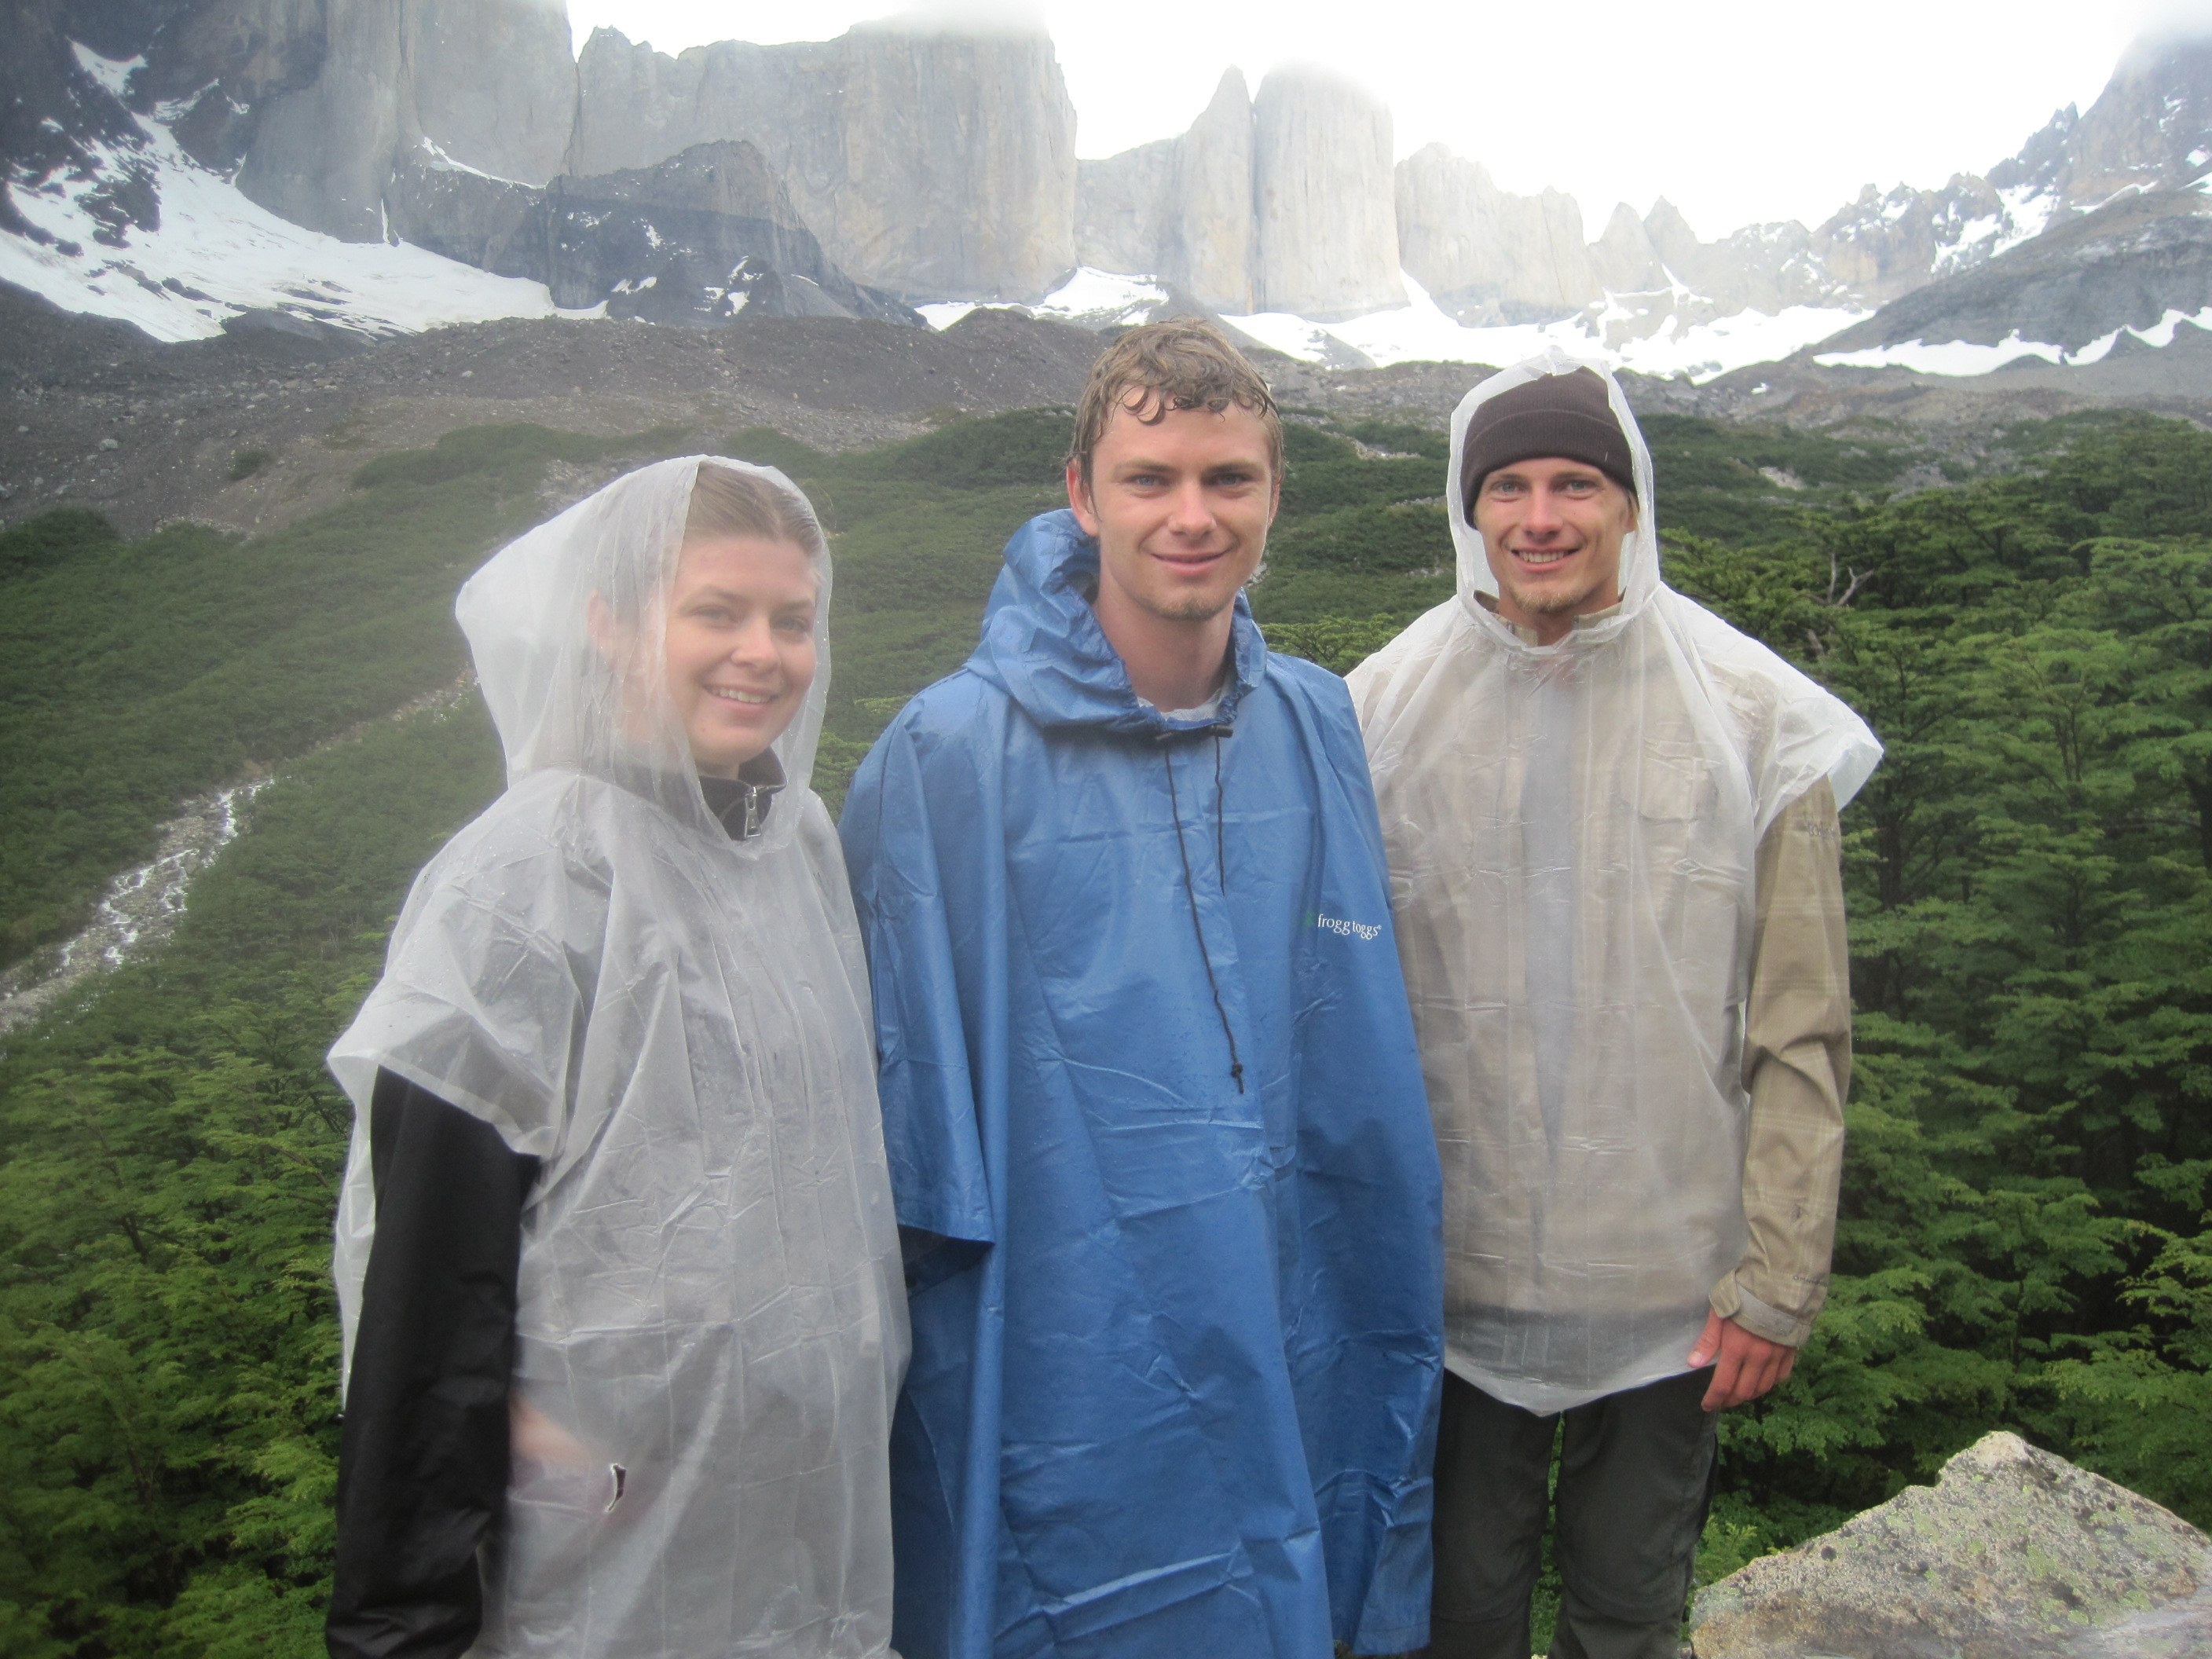 Siblings hiking in the rain in Torres del Paine.